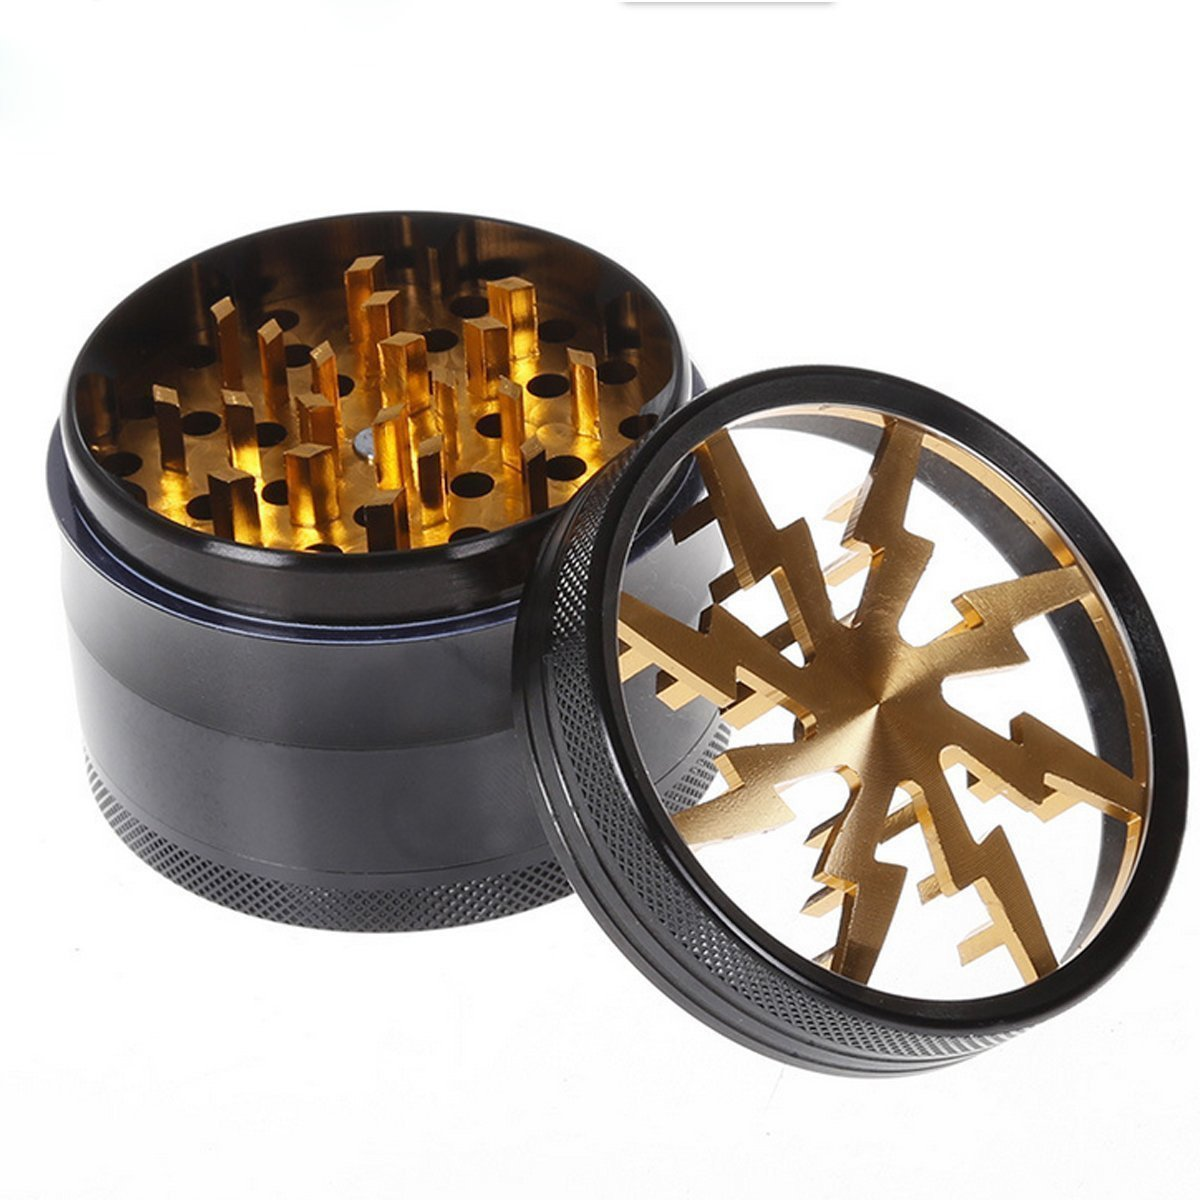 Metrical Poetry Spice Herb Grinder